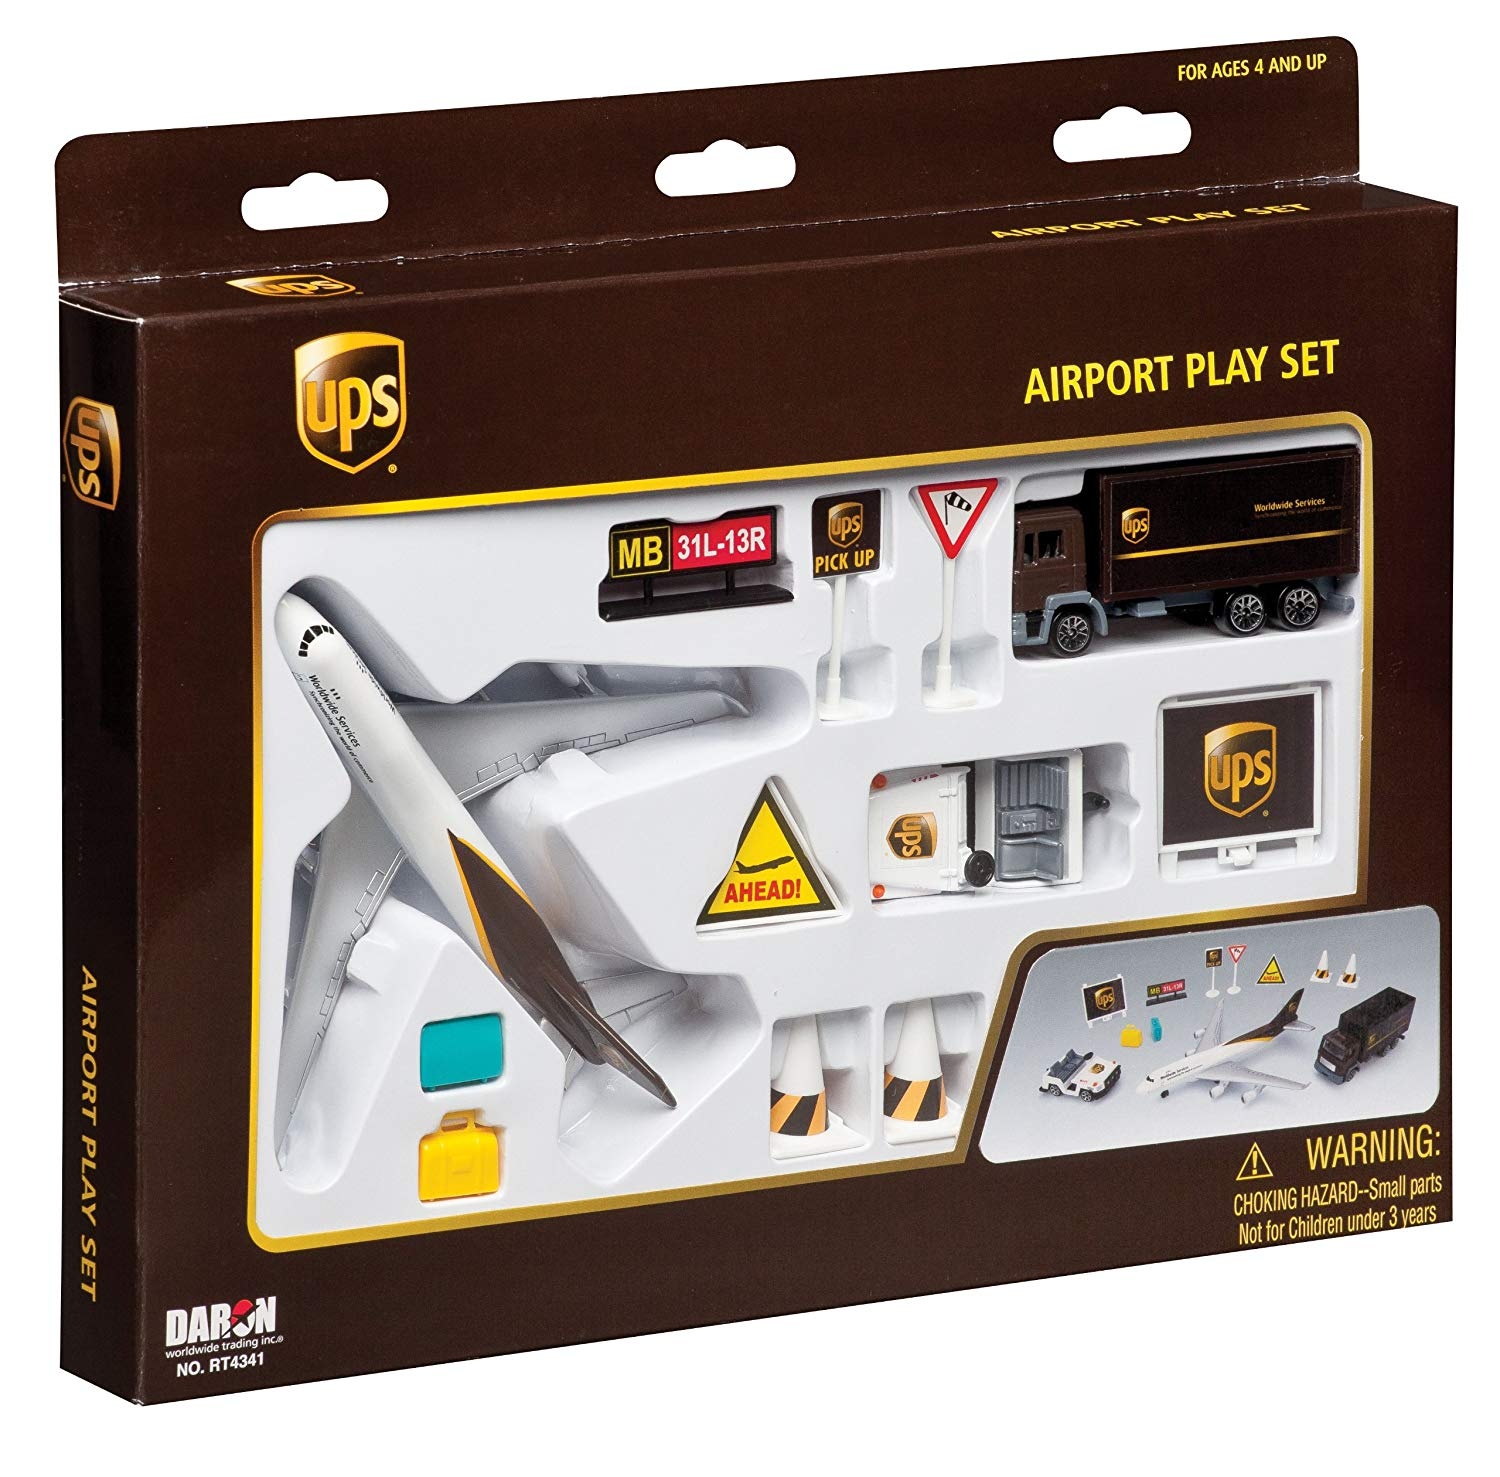 UPS Airport Play Set